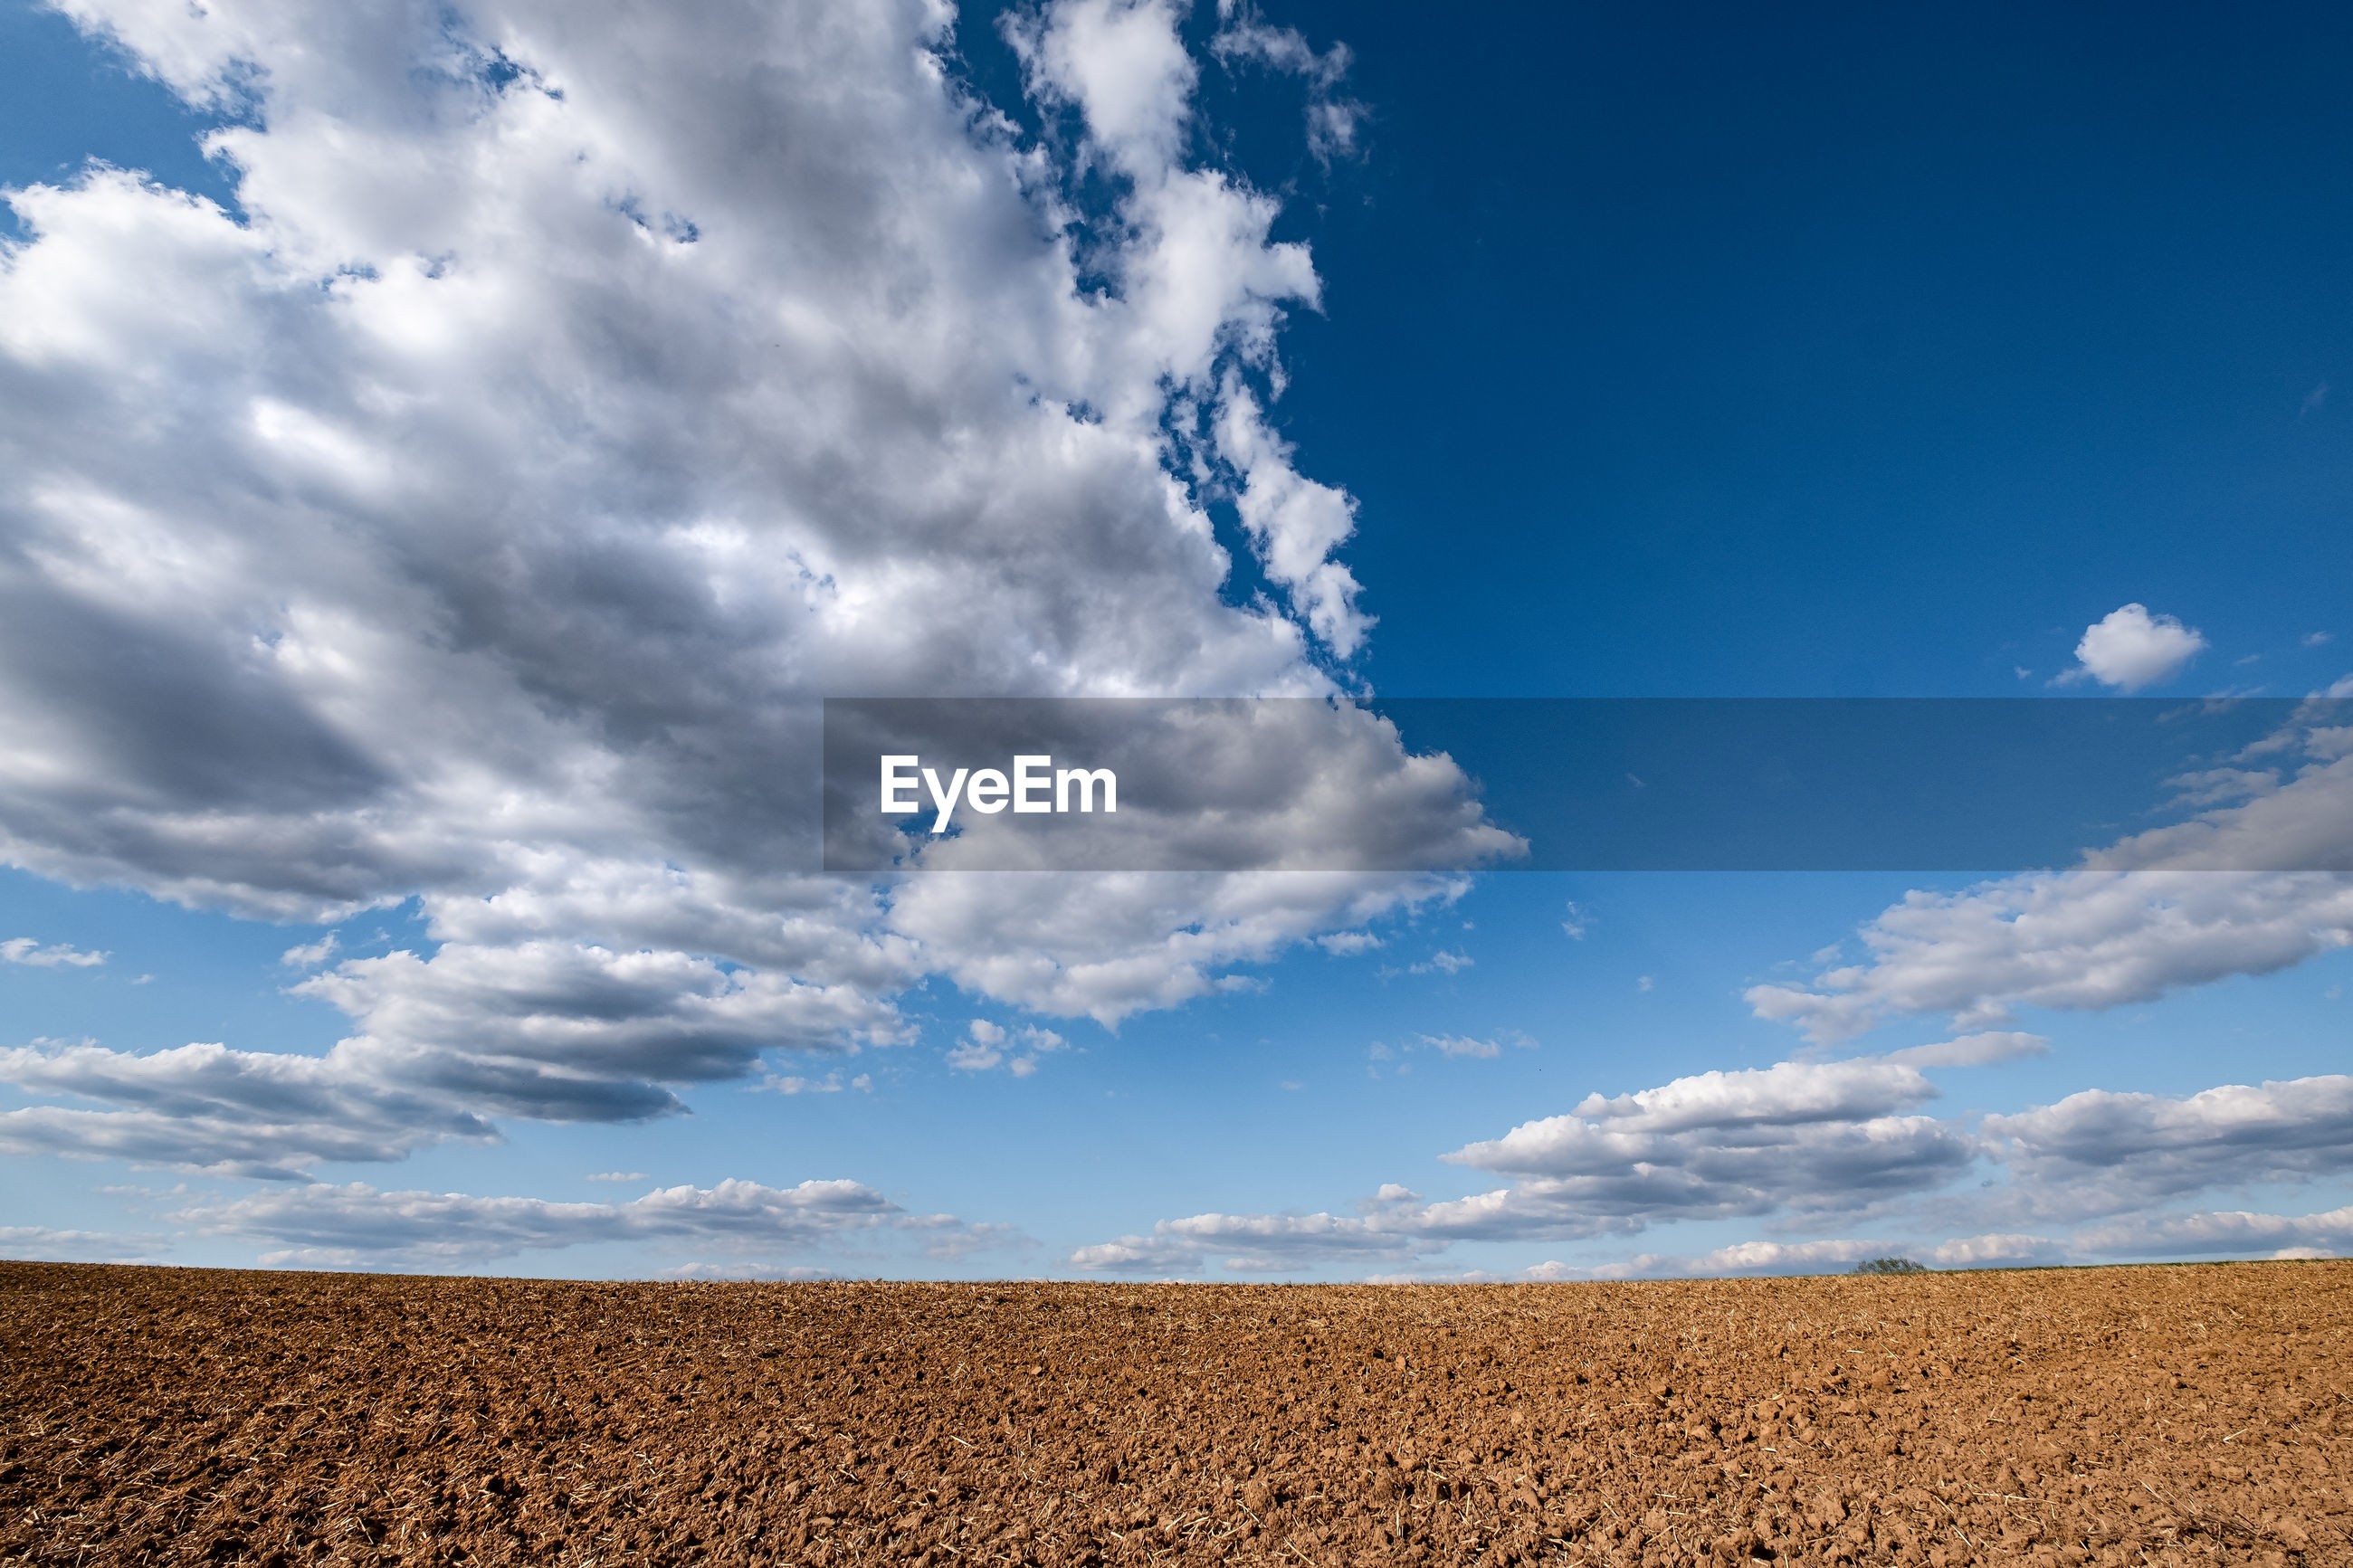 Scenic view of bare field under blue sky with dramatic clouds